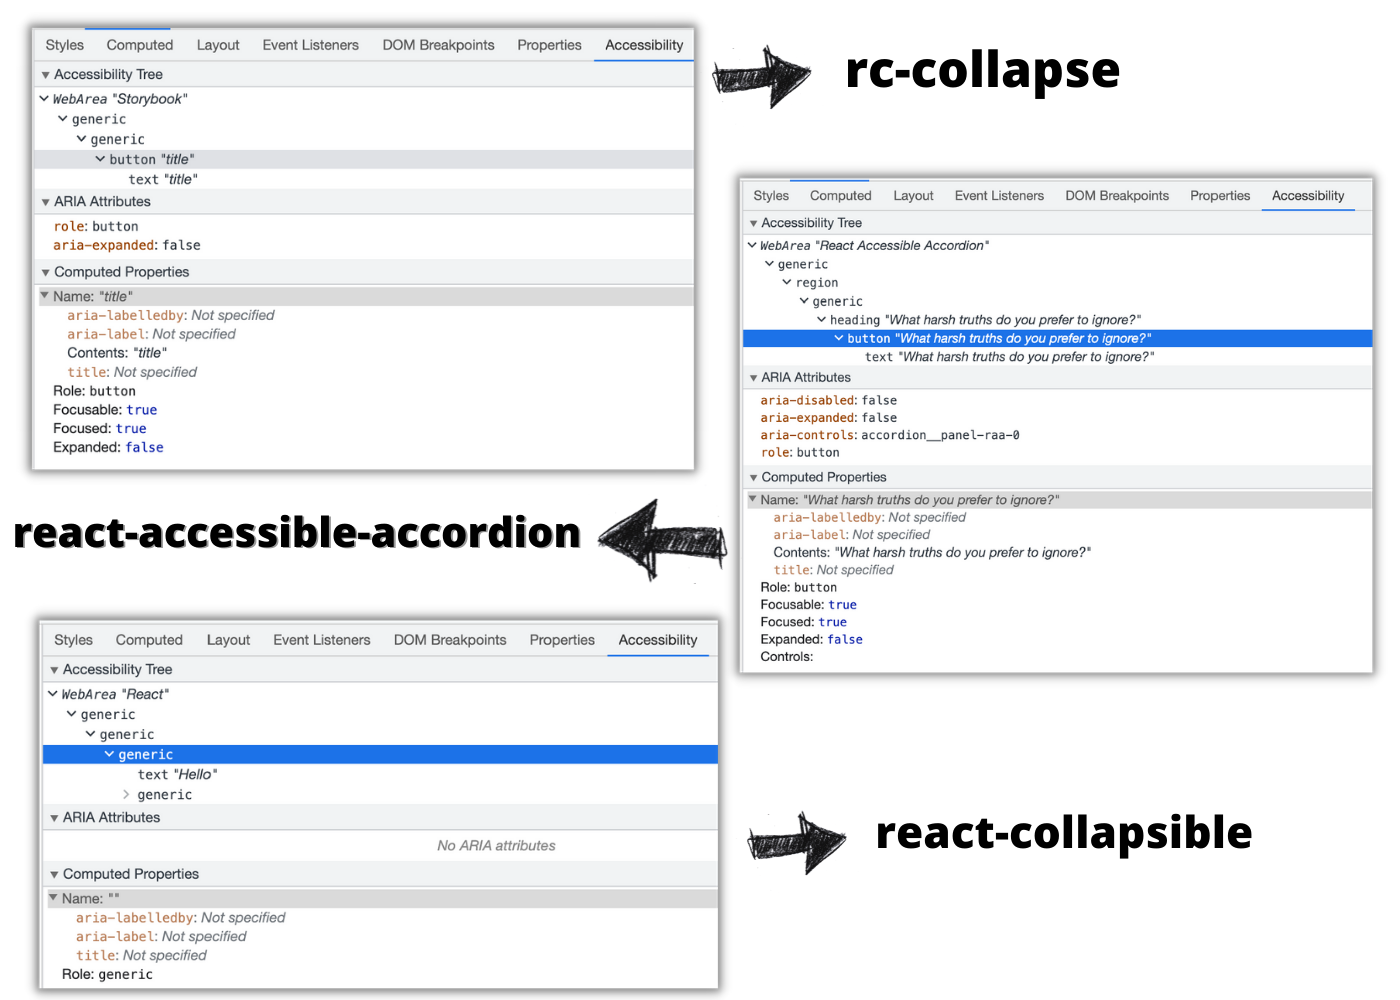 Snippet of Comparison of accessibility trees for different libraries